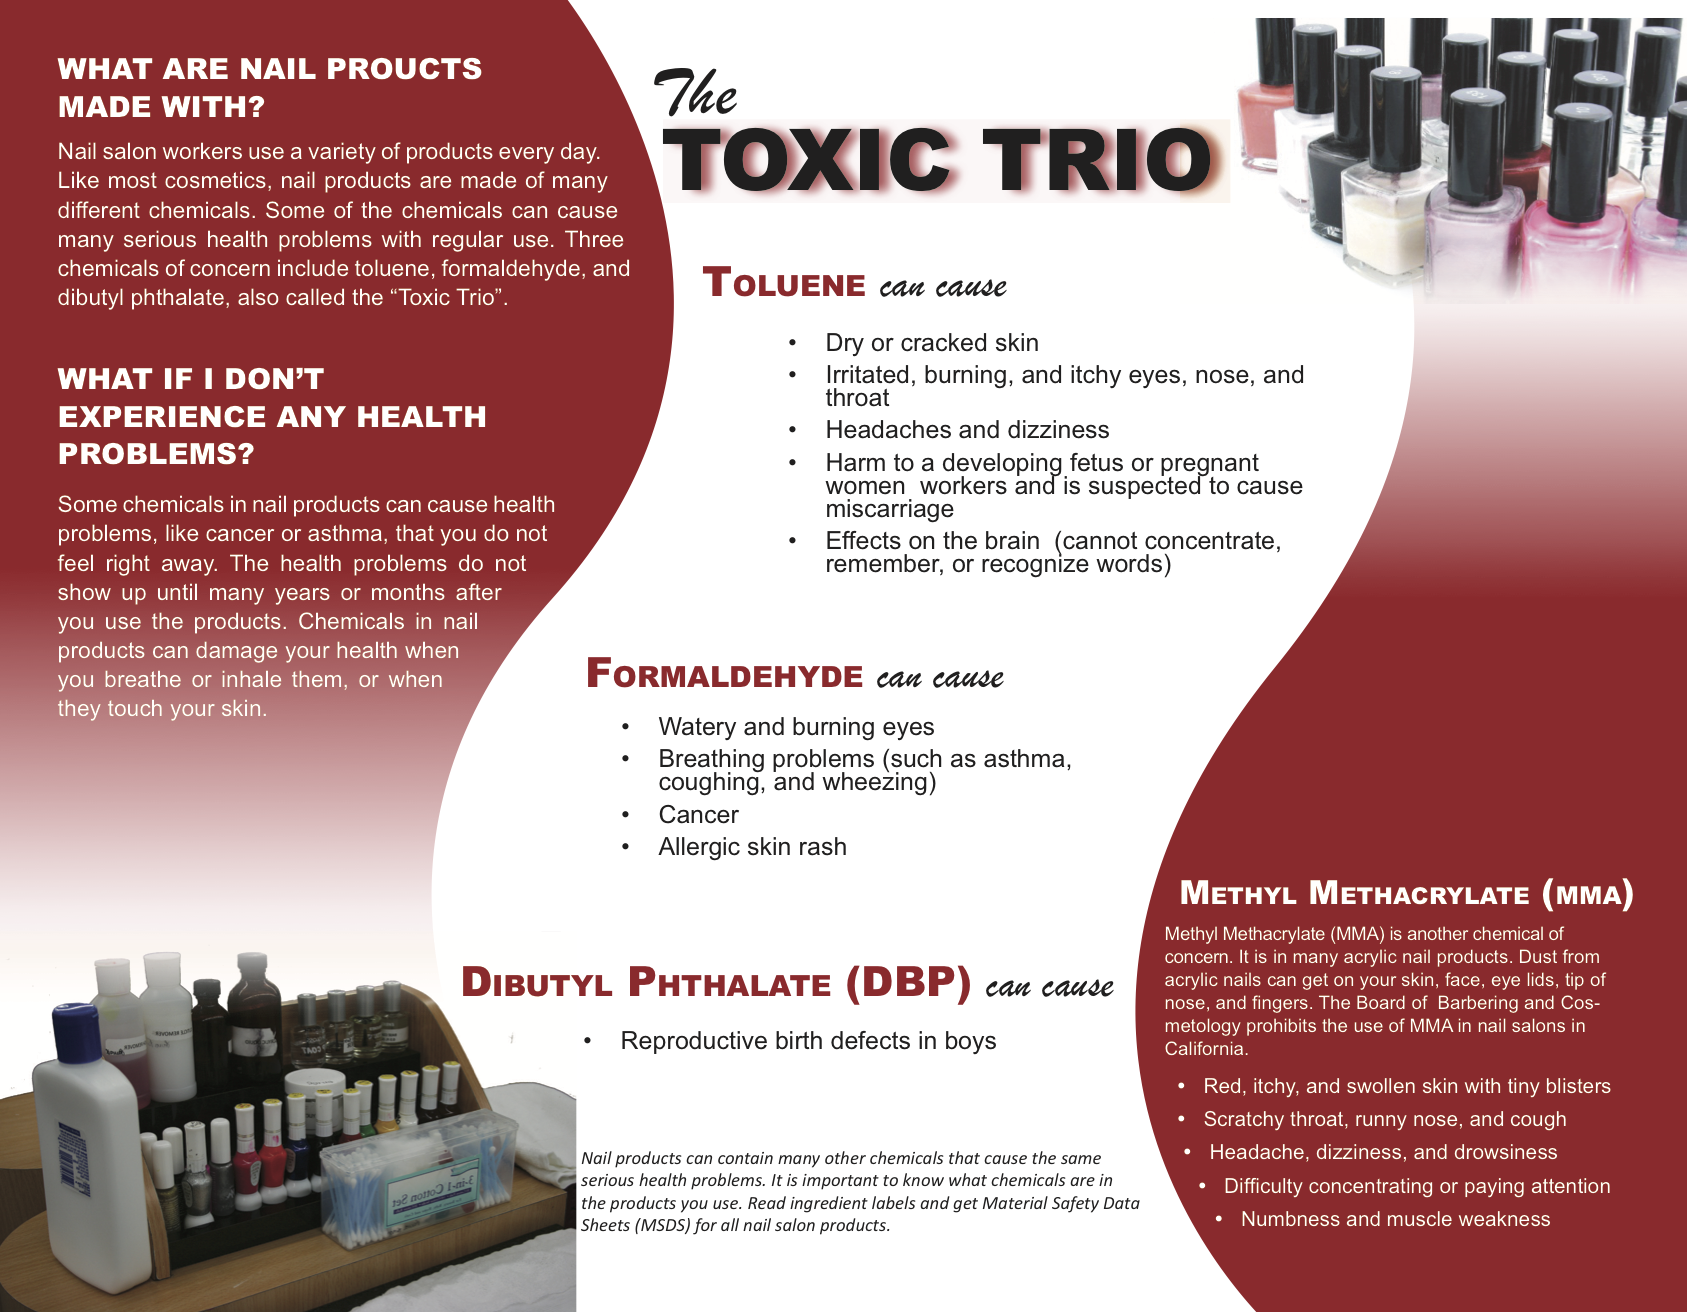 Learn more about the toxic trio – Michigan Healthy Nail